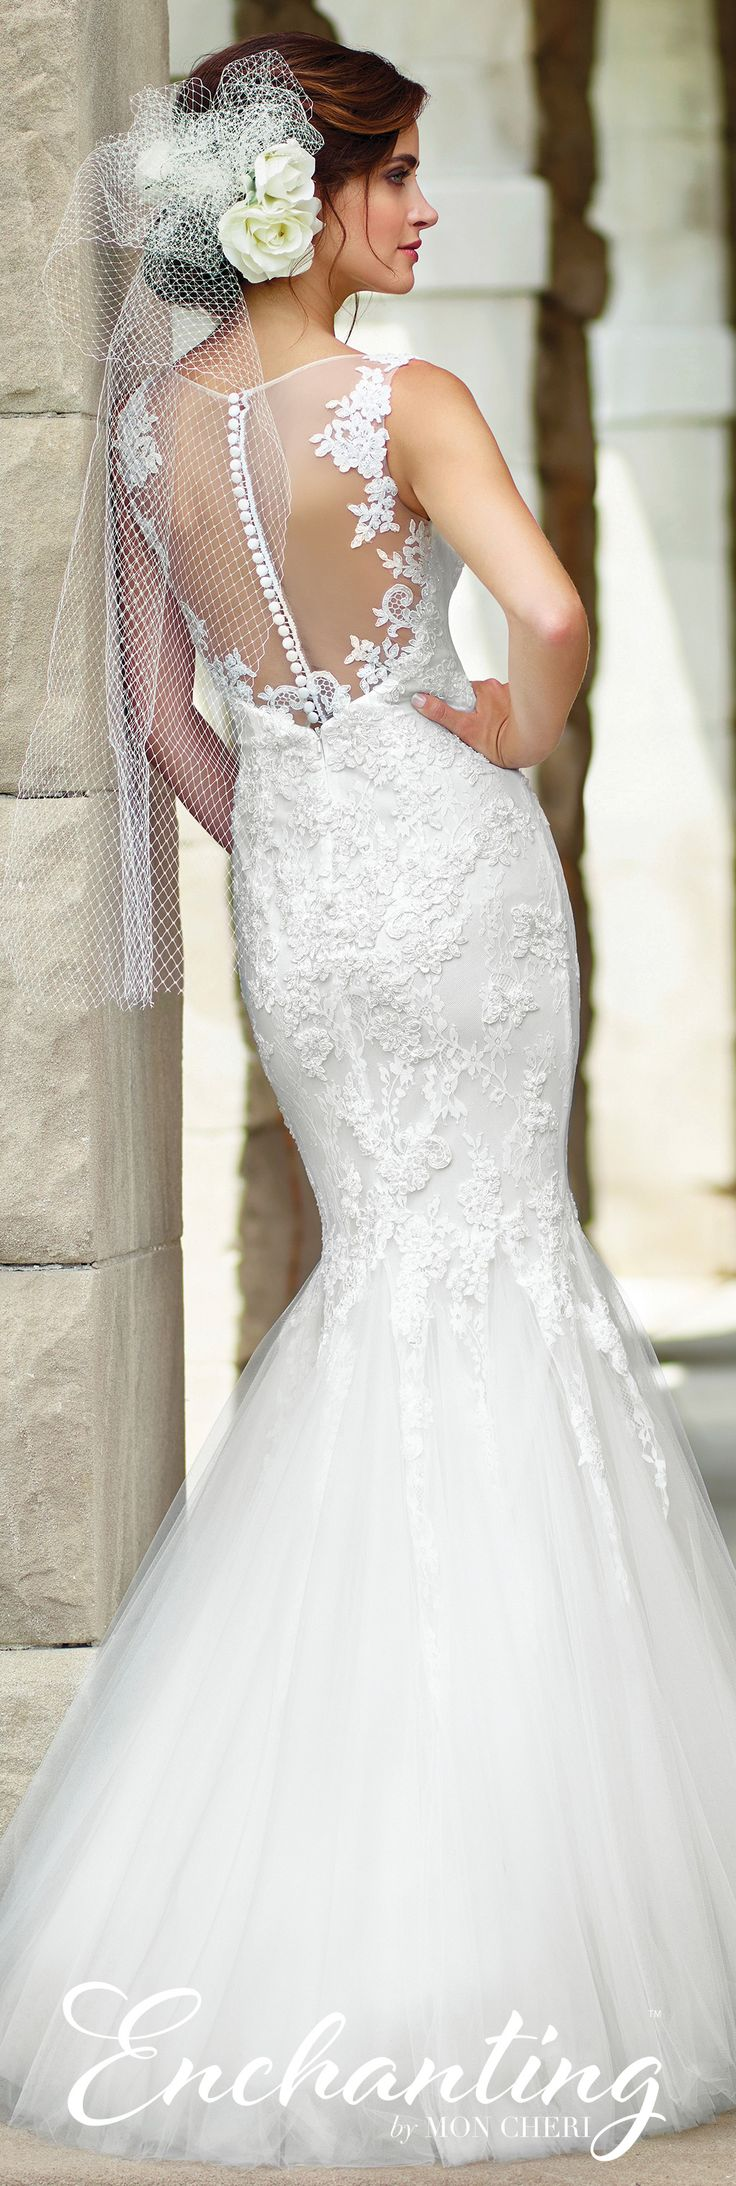 Enchanting by Mon Cheri Spring 2017 Wedding Gown Collection - Style No. 117182 - sleeveless tulle and lace fit and flare mermaid wedding dress with illusion lace back